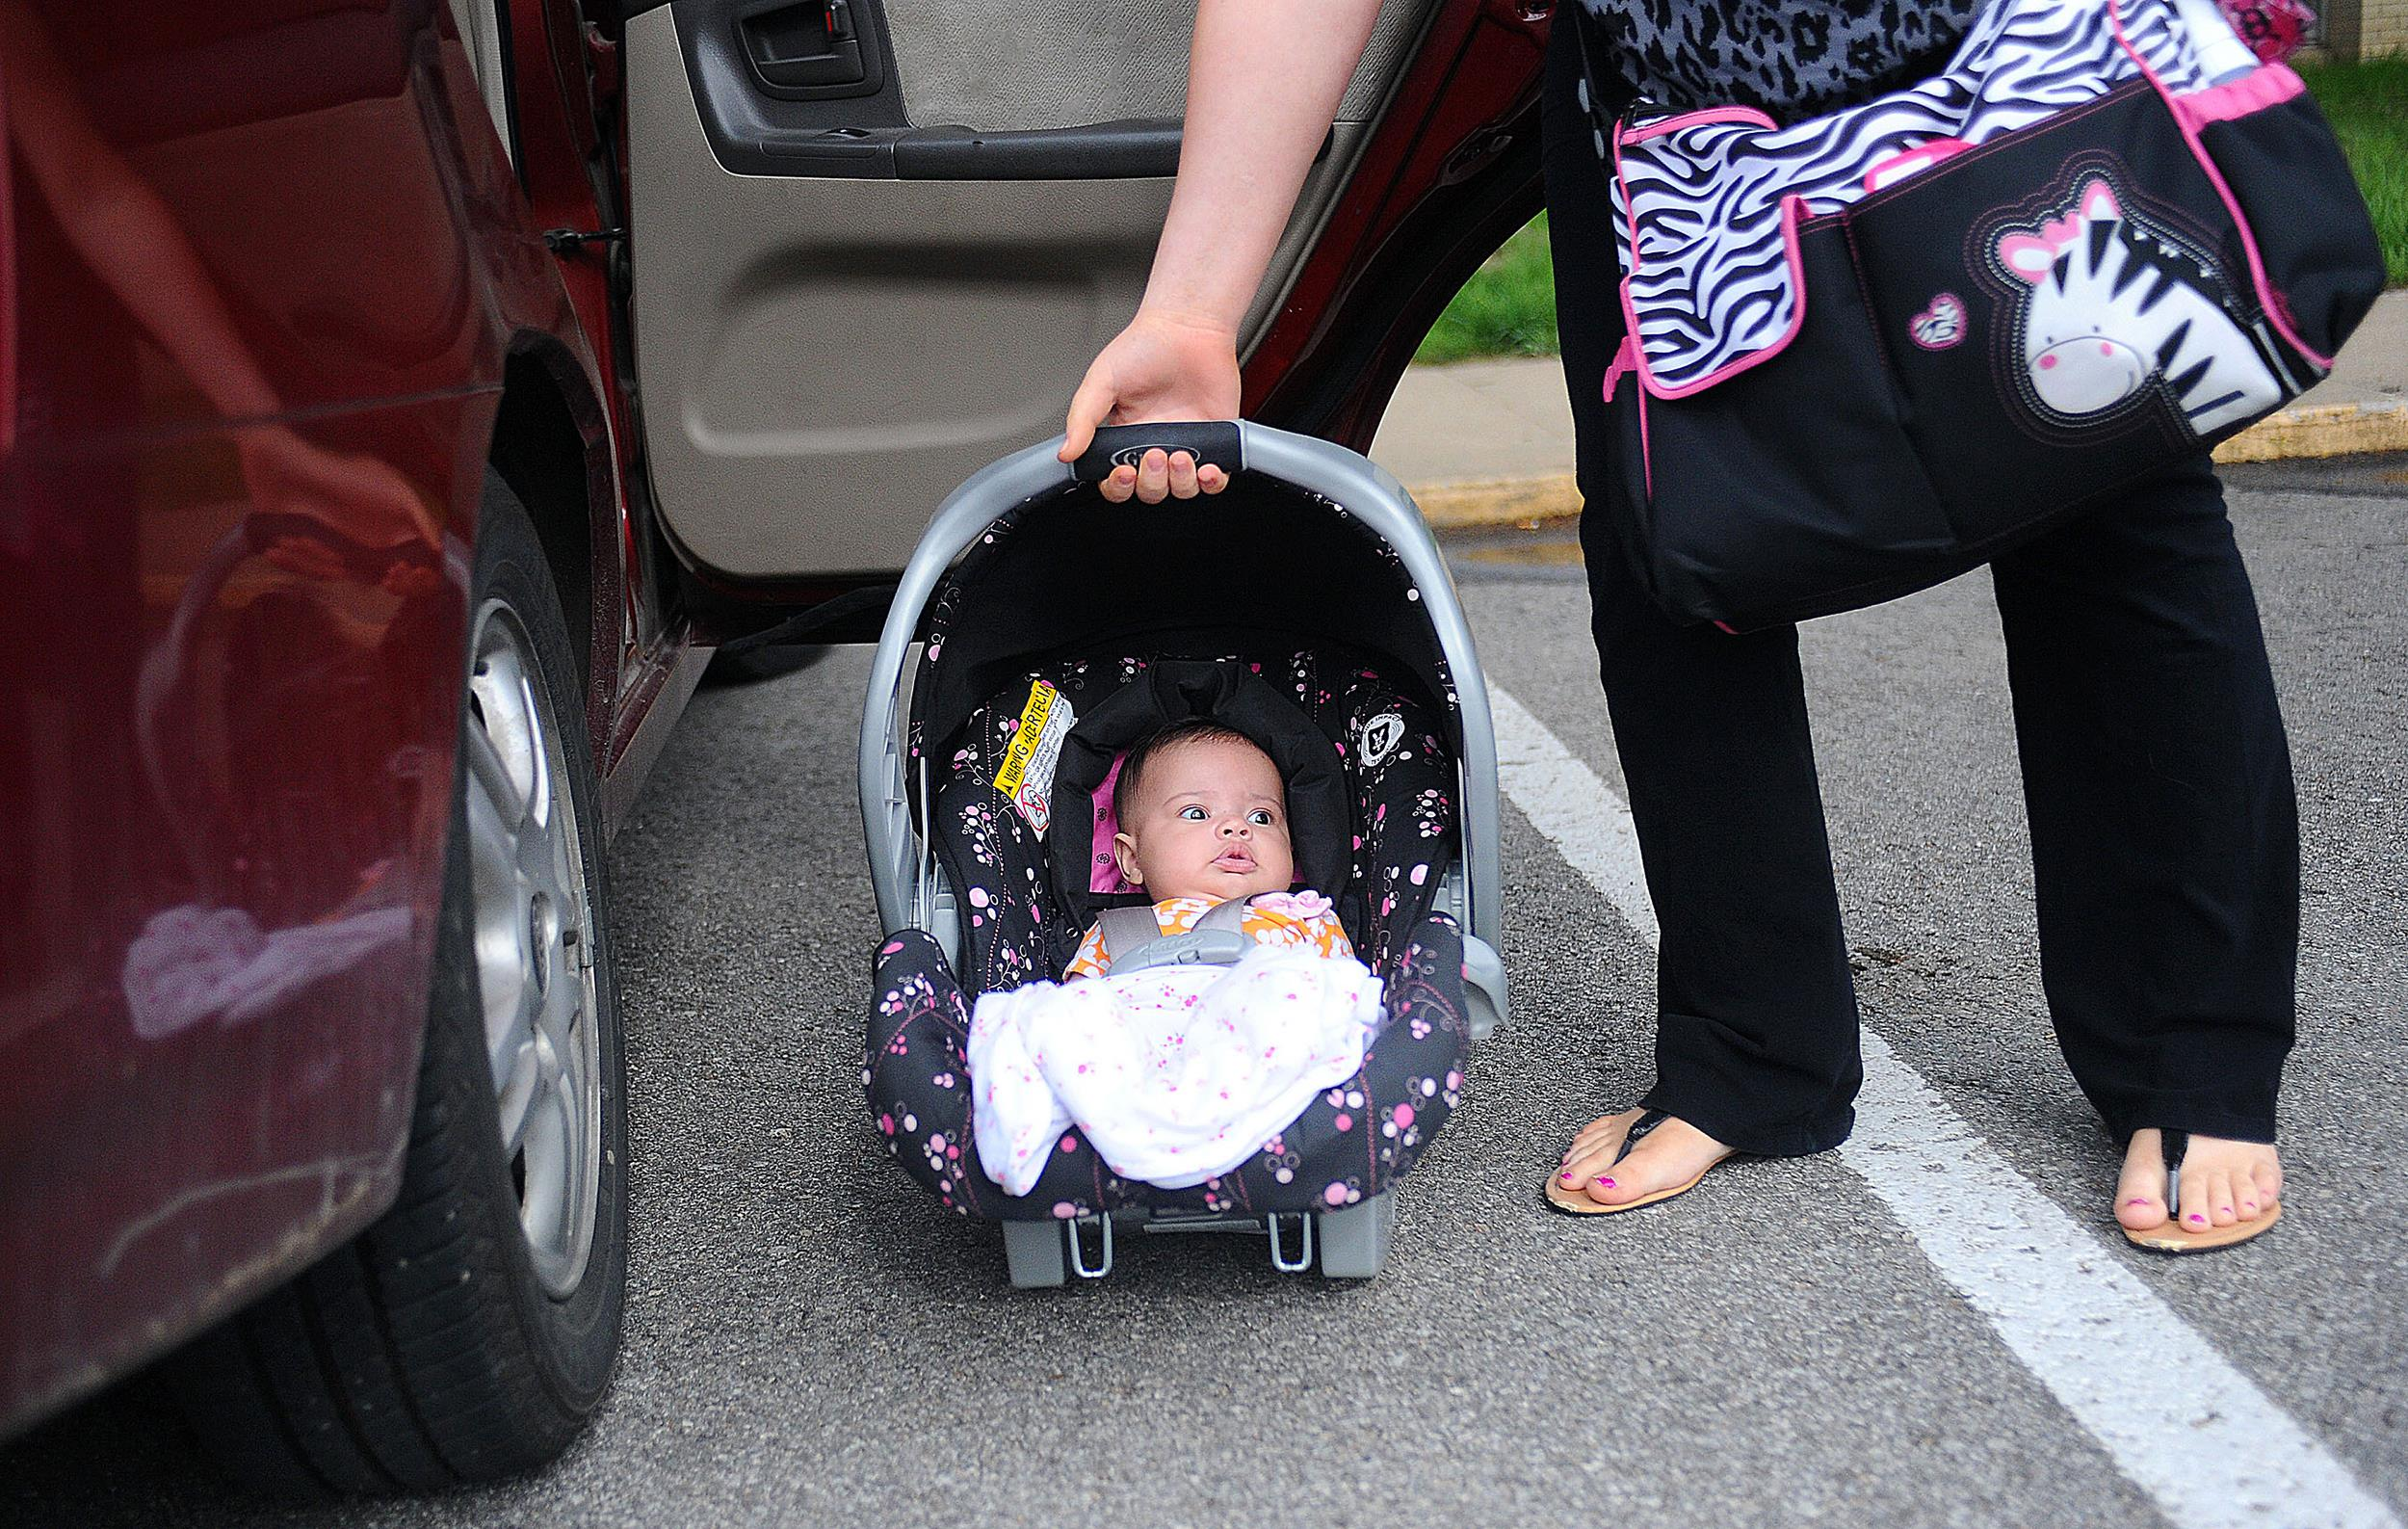 Image: A baby waits to be loaded into the car by her mother outside of St. Paul Lutheran in St. Joseph, Mo. on May 9, 2013.